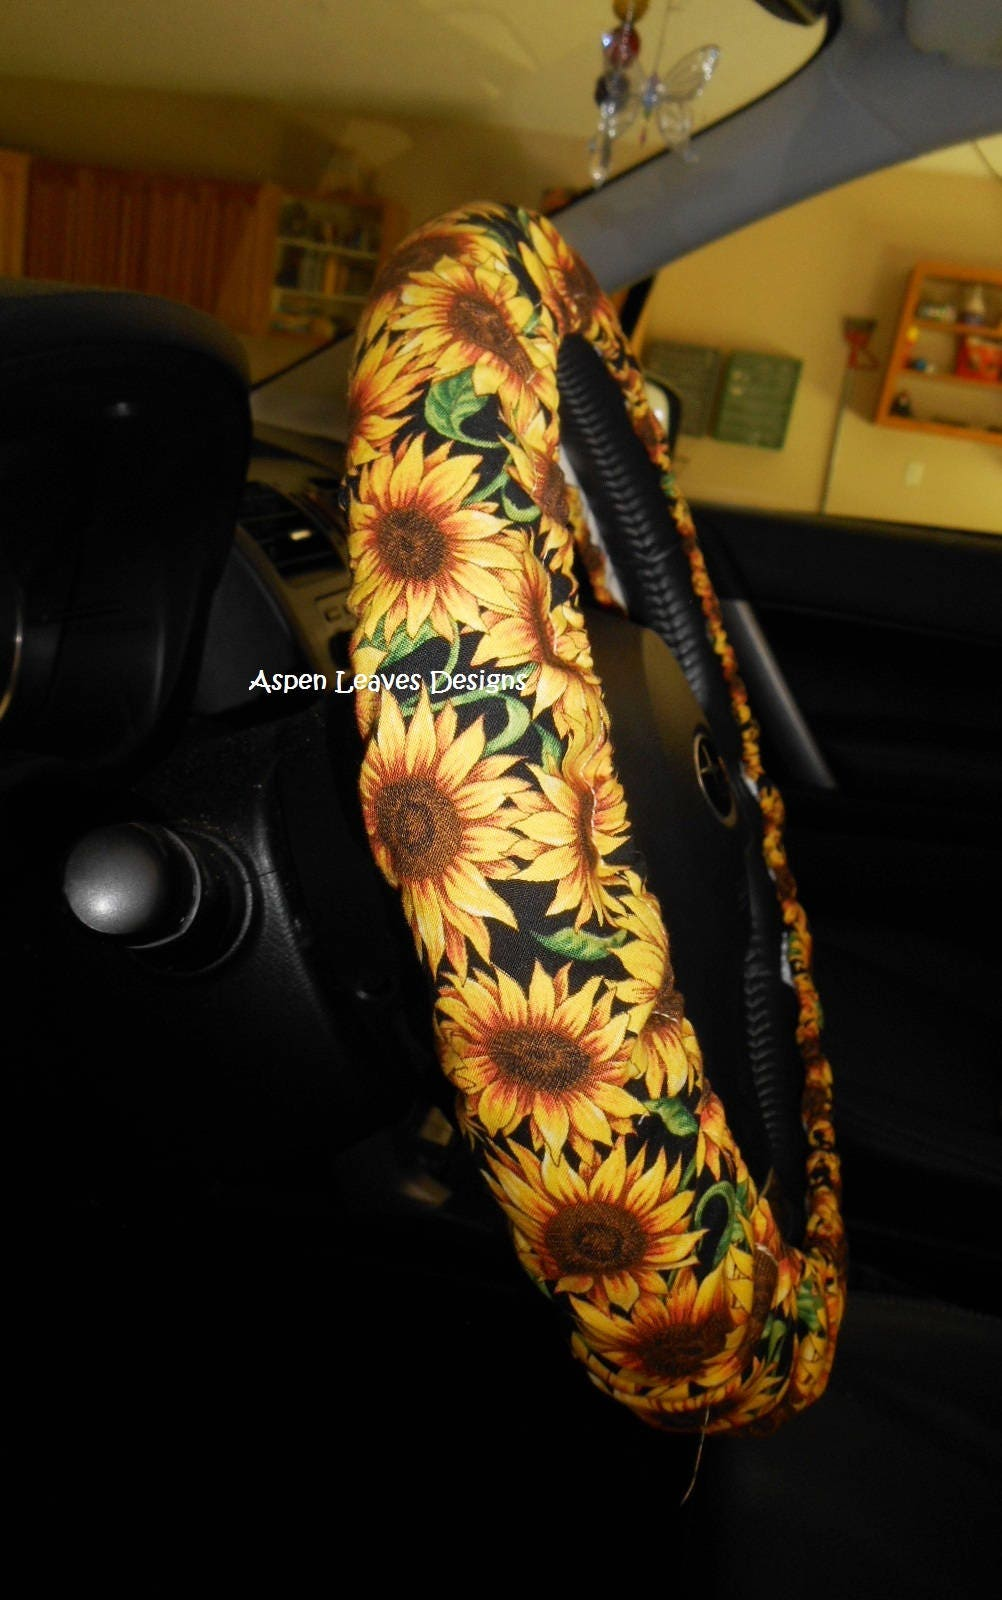 sunflower steering wheel cover gold metallic sunflowers with leaves on black seat belt covers. Black Bedroom Furniture Sets. Home Design Ideas